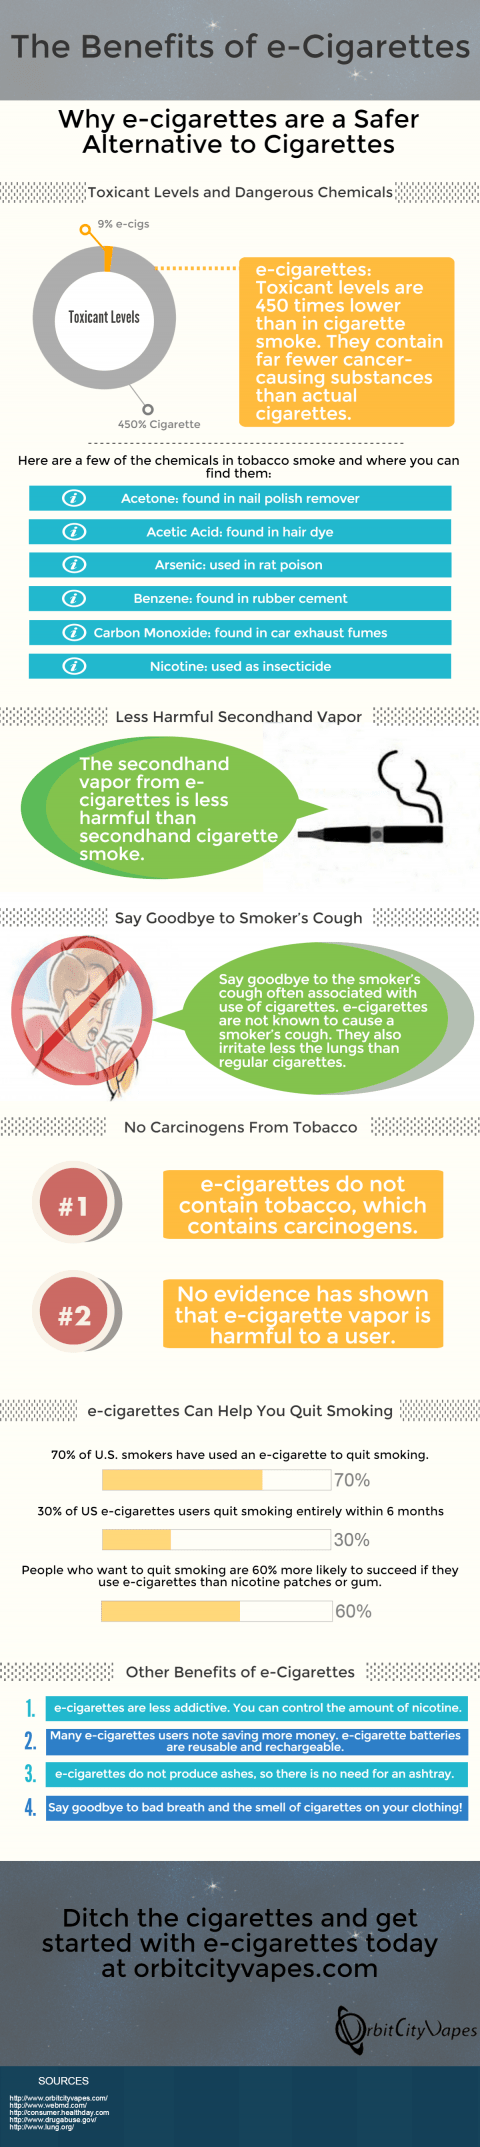 The Benefits of e-Cigarettes vs. Traditional Cigarettes